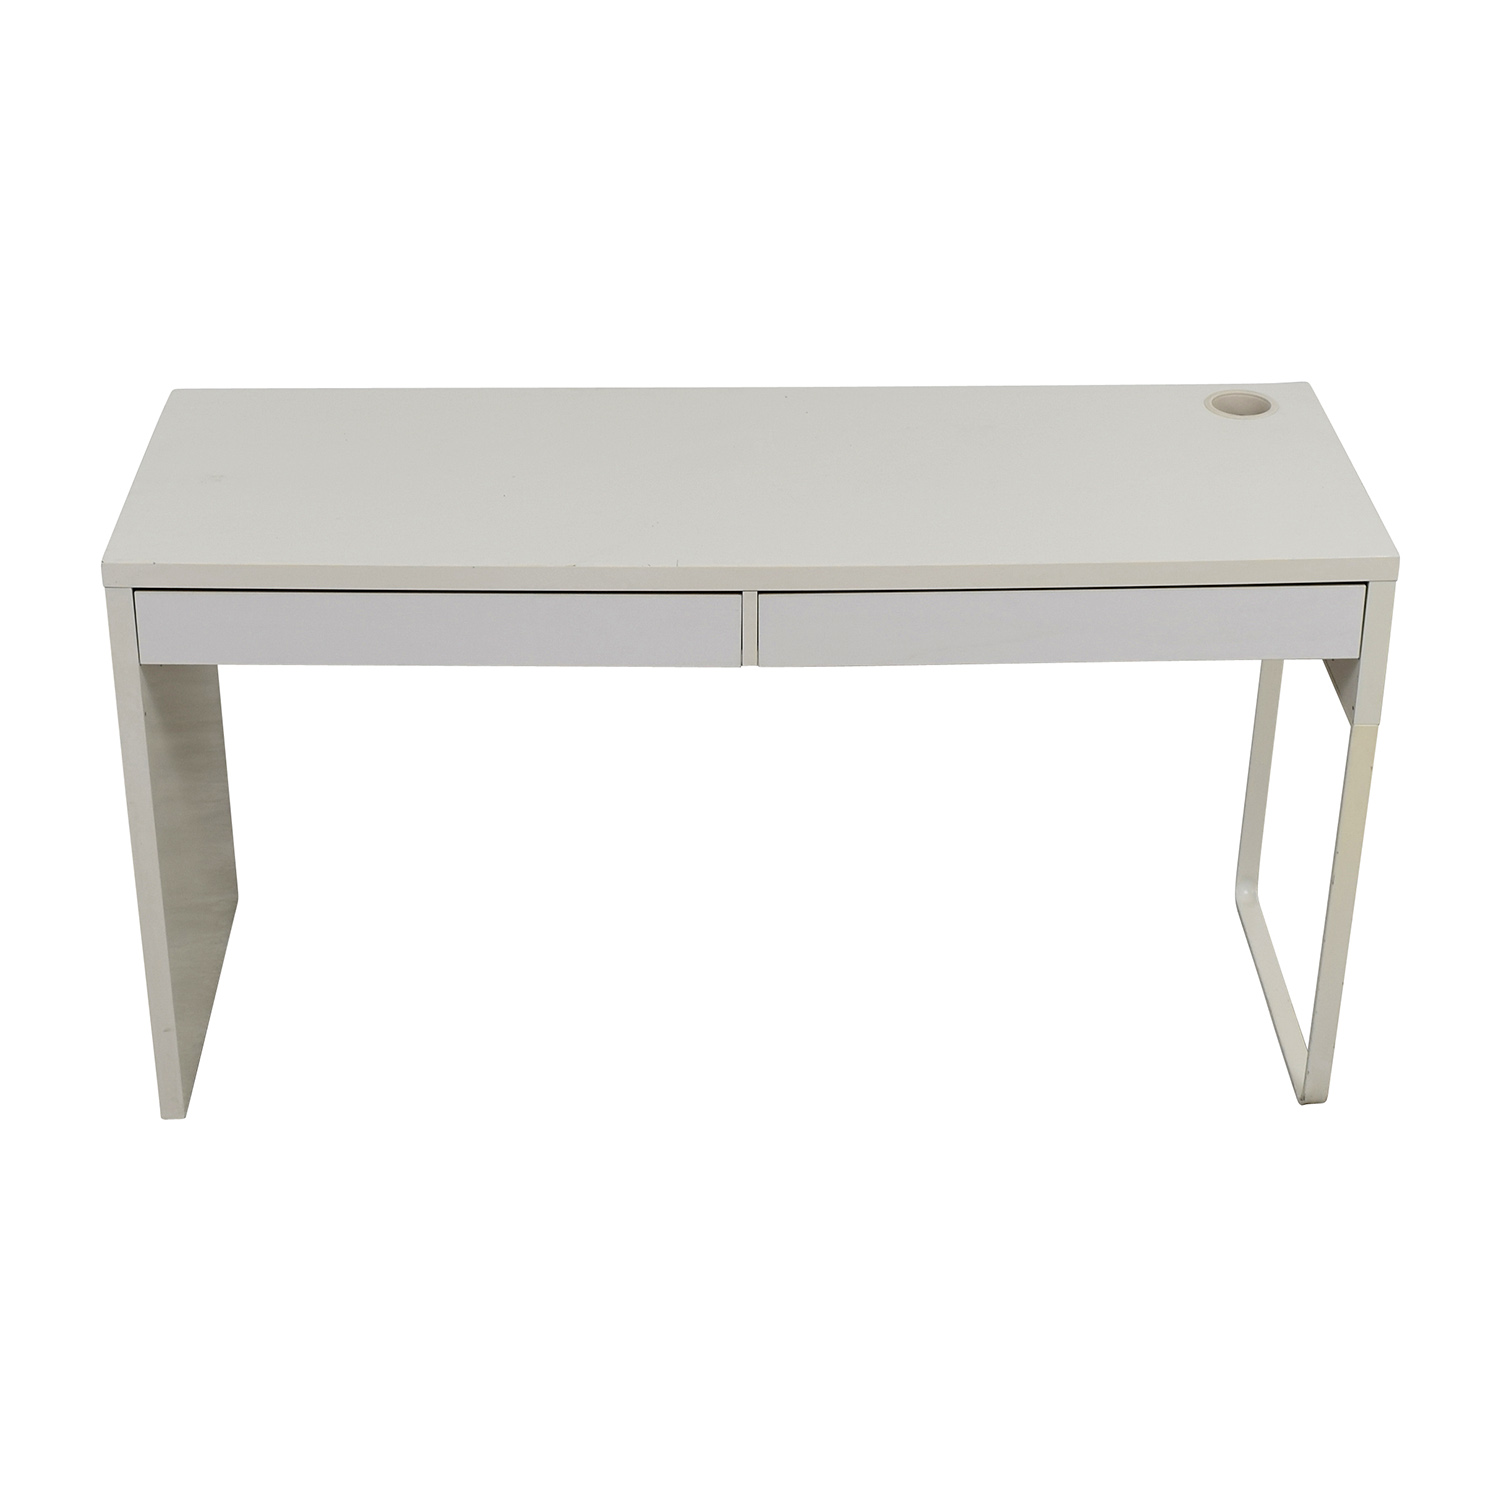 IKEA White Two-Drawer Office Desk used